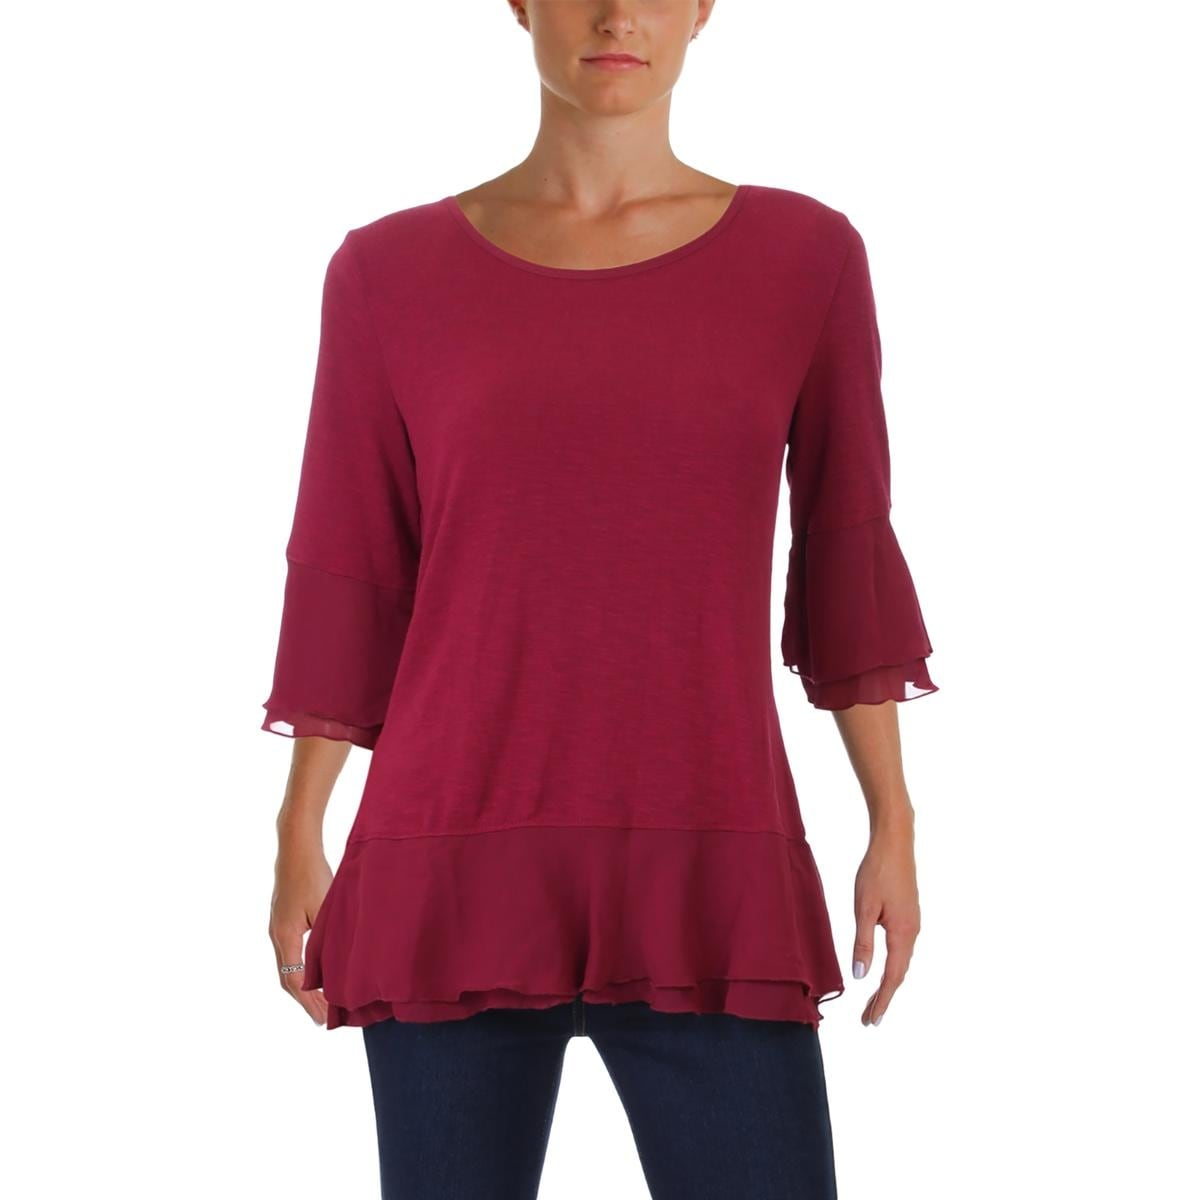 64dcd1321c5 Shop Foxcroft NYC Womens Nancy Blouse Mixed Media Bell Sleeves - Free  Shipping On Orders Over $45 - Overstock - 24153071